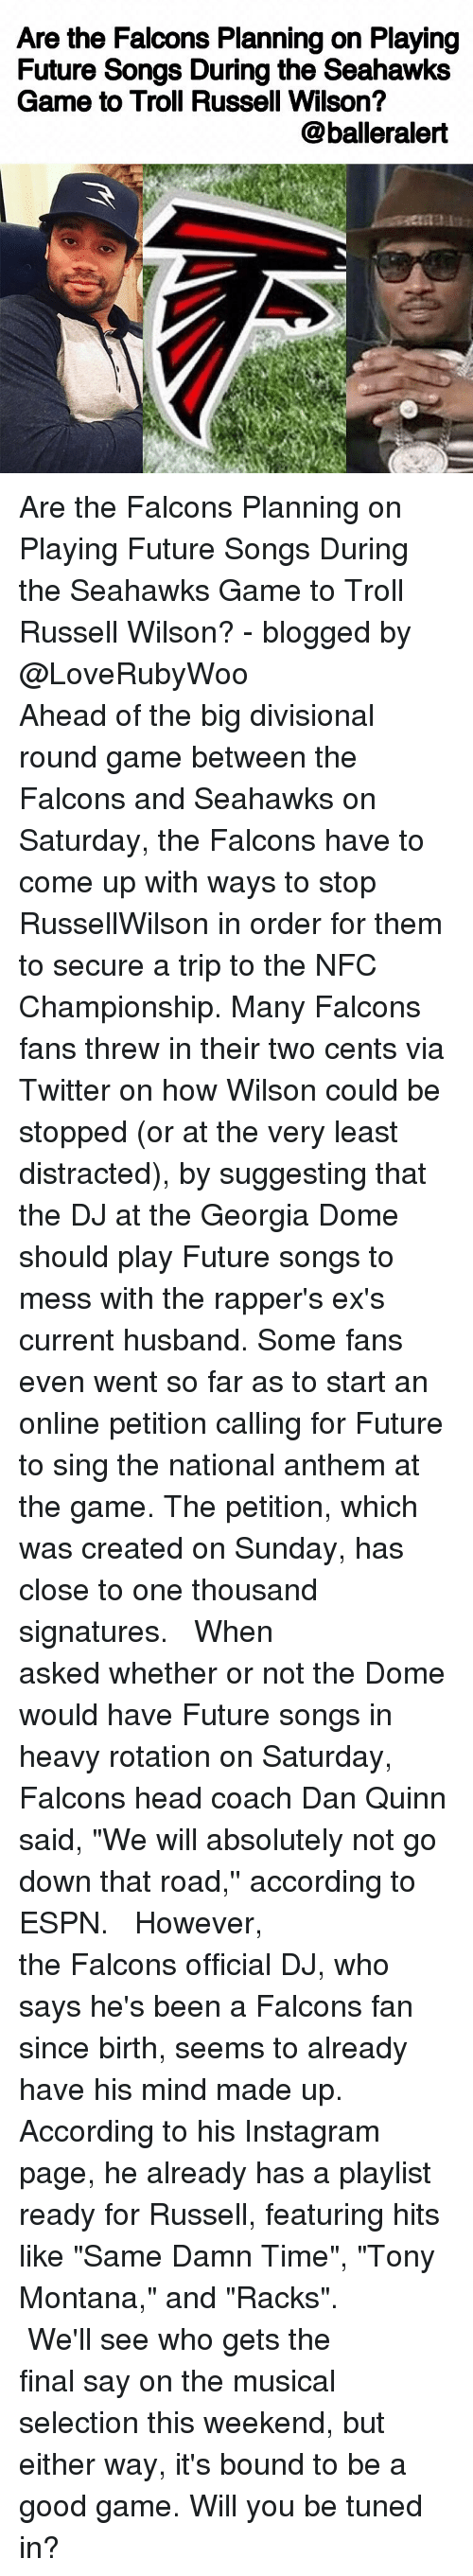 """Tony Montana: Are the Falcons Planning on Playing  Future Songs During the Seahawks  Game to Troll Russell Wilson?  @balleralert Are the Falcons Planning on Playing Future Songs During the Seahawks Game to Troll Russell Wilson? - blogged by @LoveRubyWoo ⠀⠀⠀⠀⠀⠀⠀⠀⠀ ⠀⠀⠀⠀⠀⠀⠀⠀⠀ Ahead of the big divisional round game between the Falcons and Seahawks on Saturday, the Falcons have to come up with ways to stop RussellWilson in order for them to secure a trip to the NFC Championship. Many Falcons fans threw in their two cents via Twitter on how Wilson could be stopped (or at the very least distracted), by suggesting that the DJ at the Georgia Dome should play Future songs to mess with the rapper's ex's current husband. Some fans even went so far as to start an online petition calling for Future to sing the national anthem at the game. The petition, which was created on Sunday, has close to one thousand signatures. ⠀⠀⠀⠀⠀⠀⠀⠀⠀ ⠀⠀⠀⠀⠀⠀⠀⠀⠀ When asked whether or not the Dome would have Future songs in heavy rotation on Saturday, Falcons head coach Dan Quinn said, """"We will absolutely not go down that road,'' according to ESPN. ⠀⠀⠀⠀⠀⠀⠀⠀⠀ ⠀⠀⠀⠀⠀⠀⠀⠀⠀ However, the Falcons official DJ, who says he's been a Falcons fan since birth, seems to already have his mind made up. According to his Instagram page, he already has a playlist ready for Russell, featuring hits like """"Same Damn Time"""", """"Tony Montana,"""" and """"Racks"""". ⠀⠀⠀⠀⠀⠀⠀⠀⠀ ⠀⠀⠀⠀⠀⠀⠀⠀⠀ We'll see who gets the final say on the musical selection this weekend, but either way, it's bound to be a good game. Will you be tuned in?"""